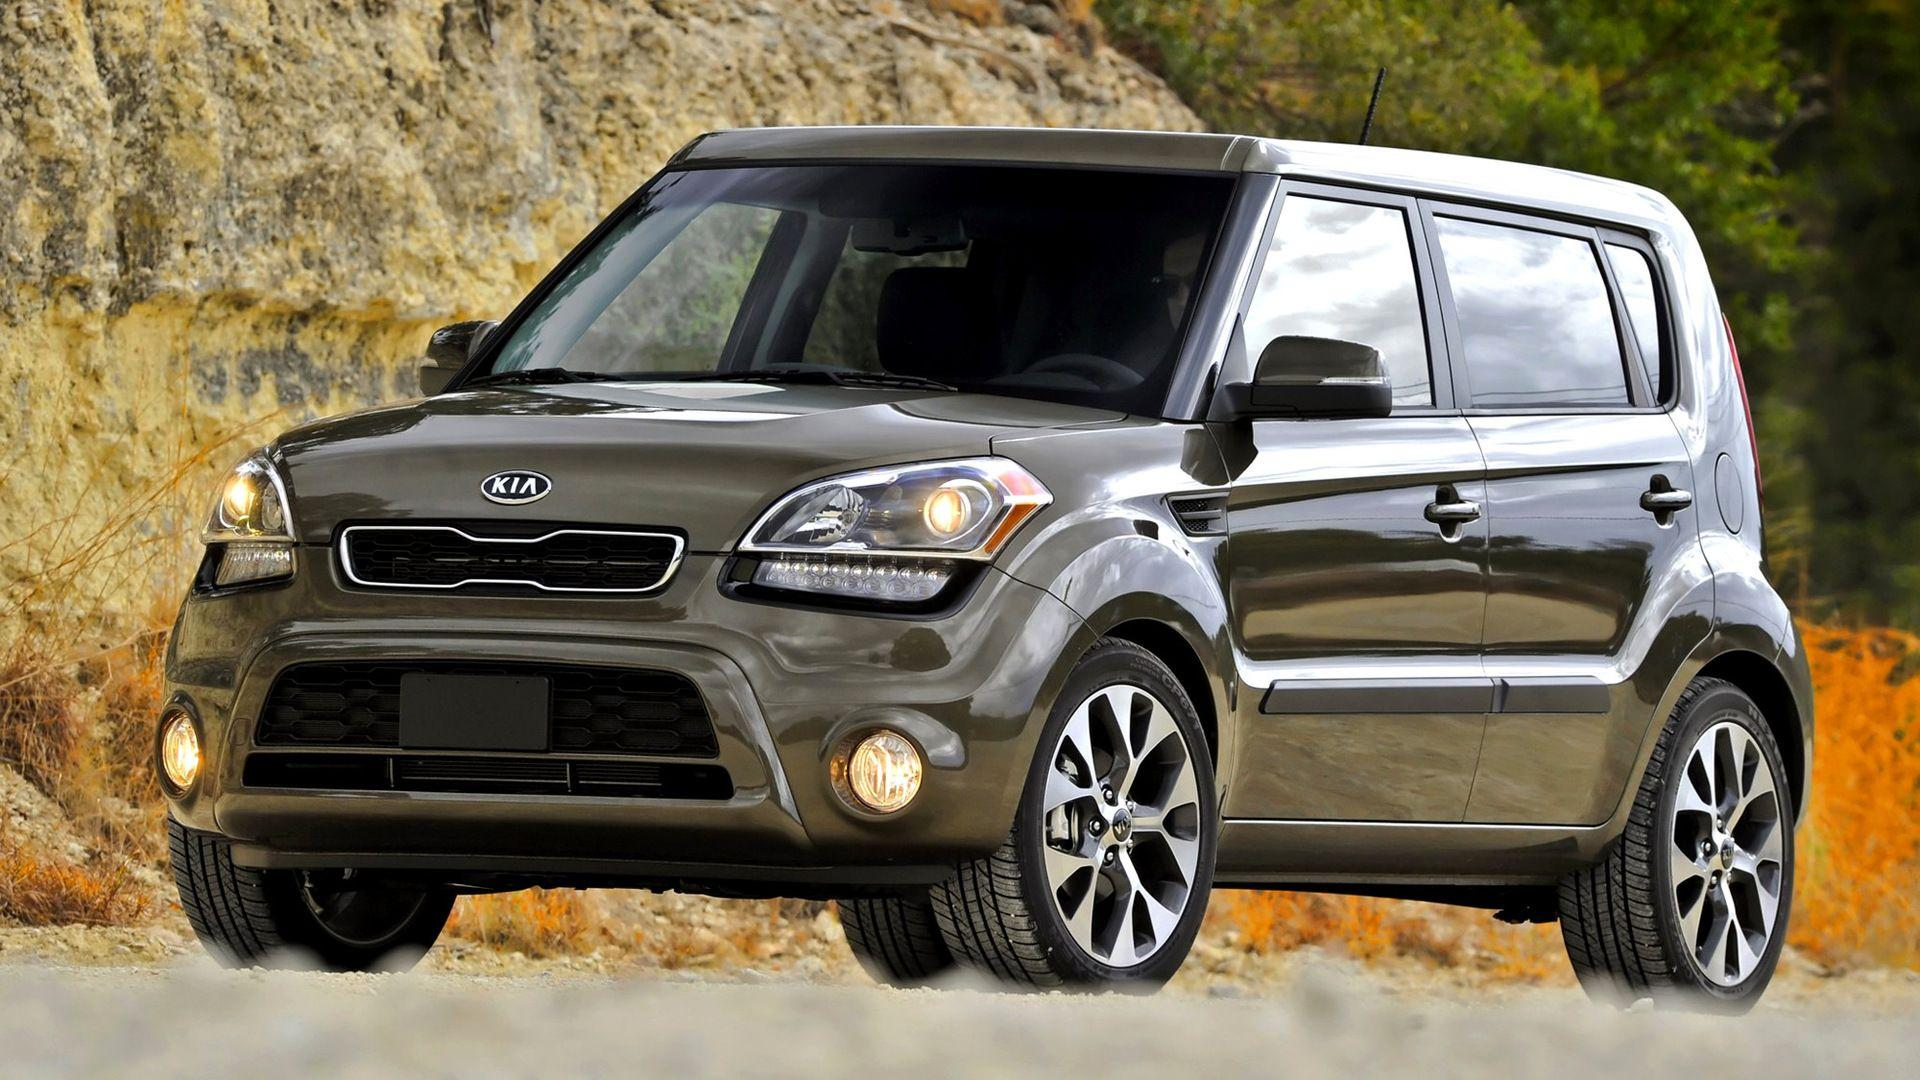 Kia Soul (2011) US Wallpapers and HD Images - Car Pixel